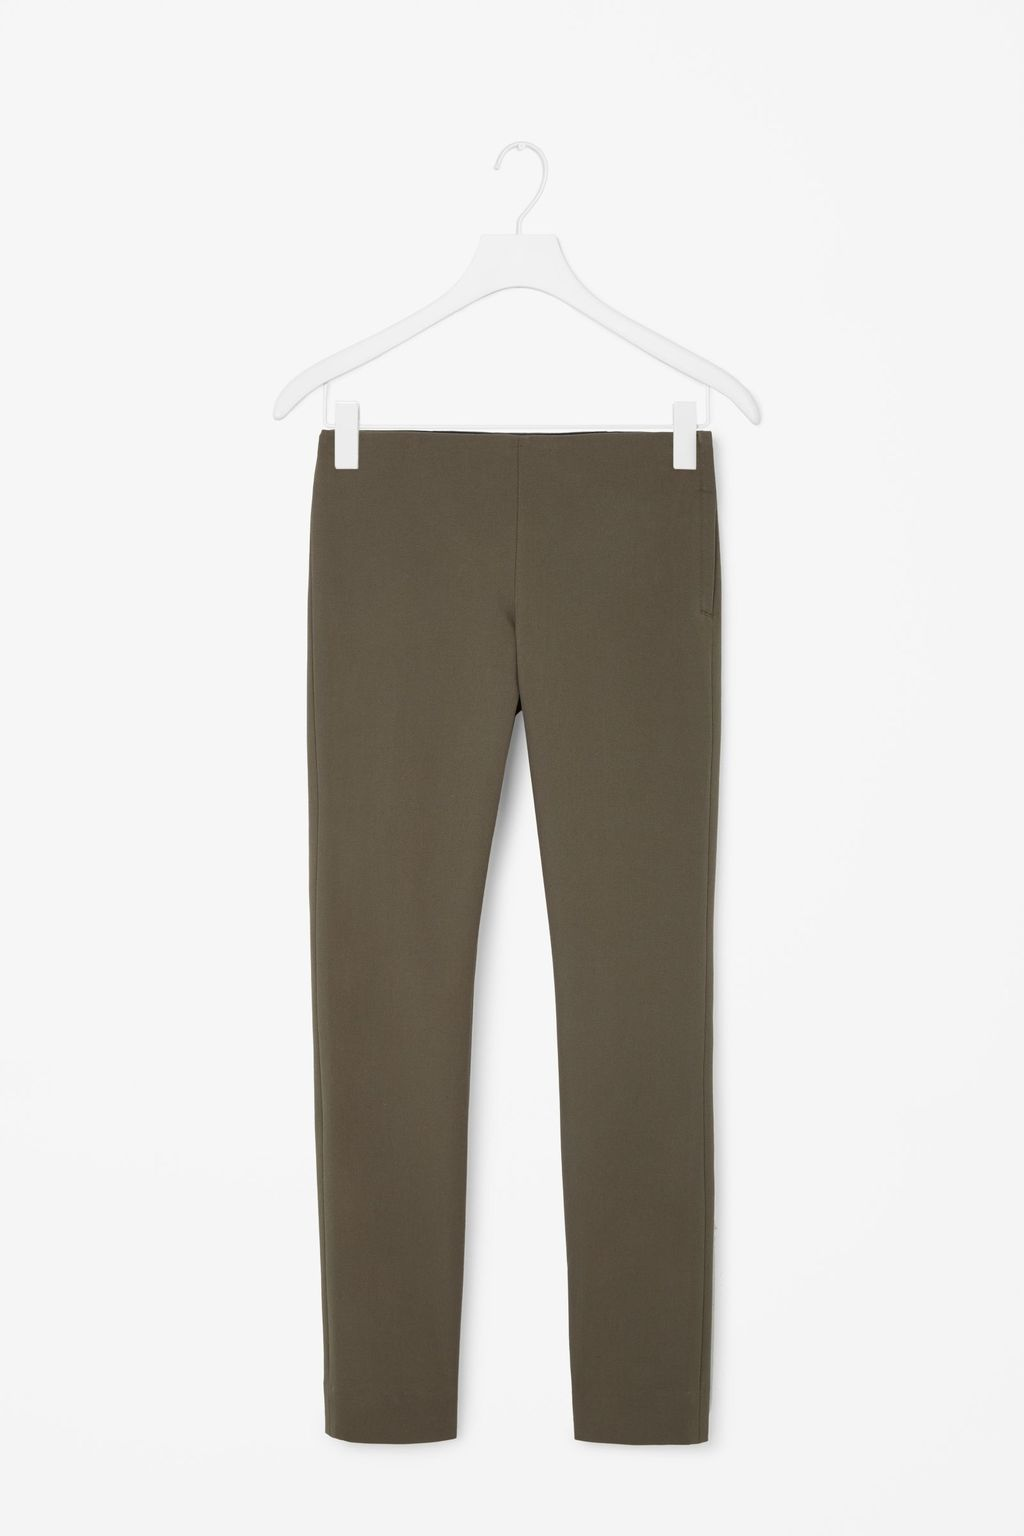 Slim Fit Trousers - length: standard; pattern: plain; waist: mid/regular rise; predominant colour: khaki; occasions: casual, holiday; fibres: cotton - stretch; fit: slim leg; pattern type: fabric; texture group: woven light midweight; style: standard; season: s/s 2016; wardrobe: basic